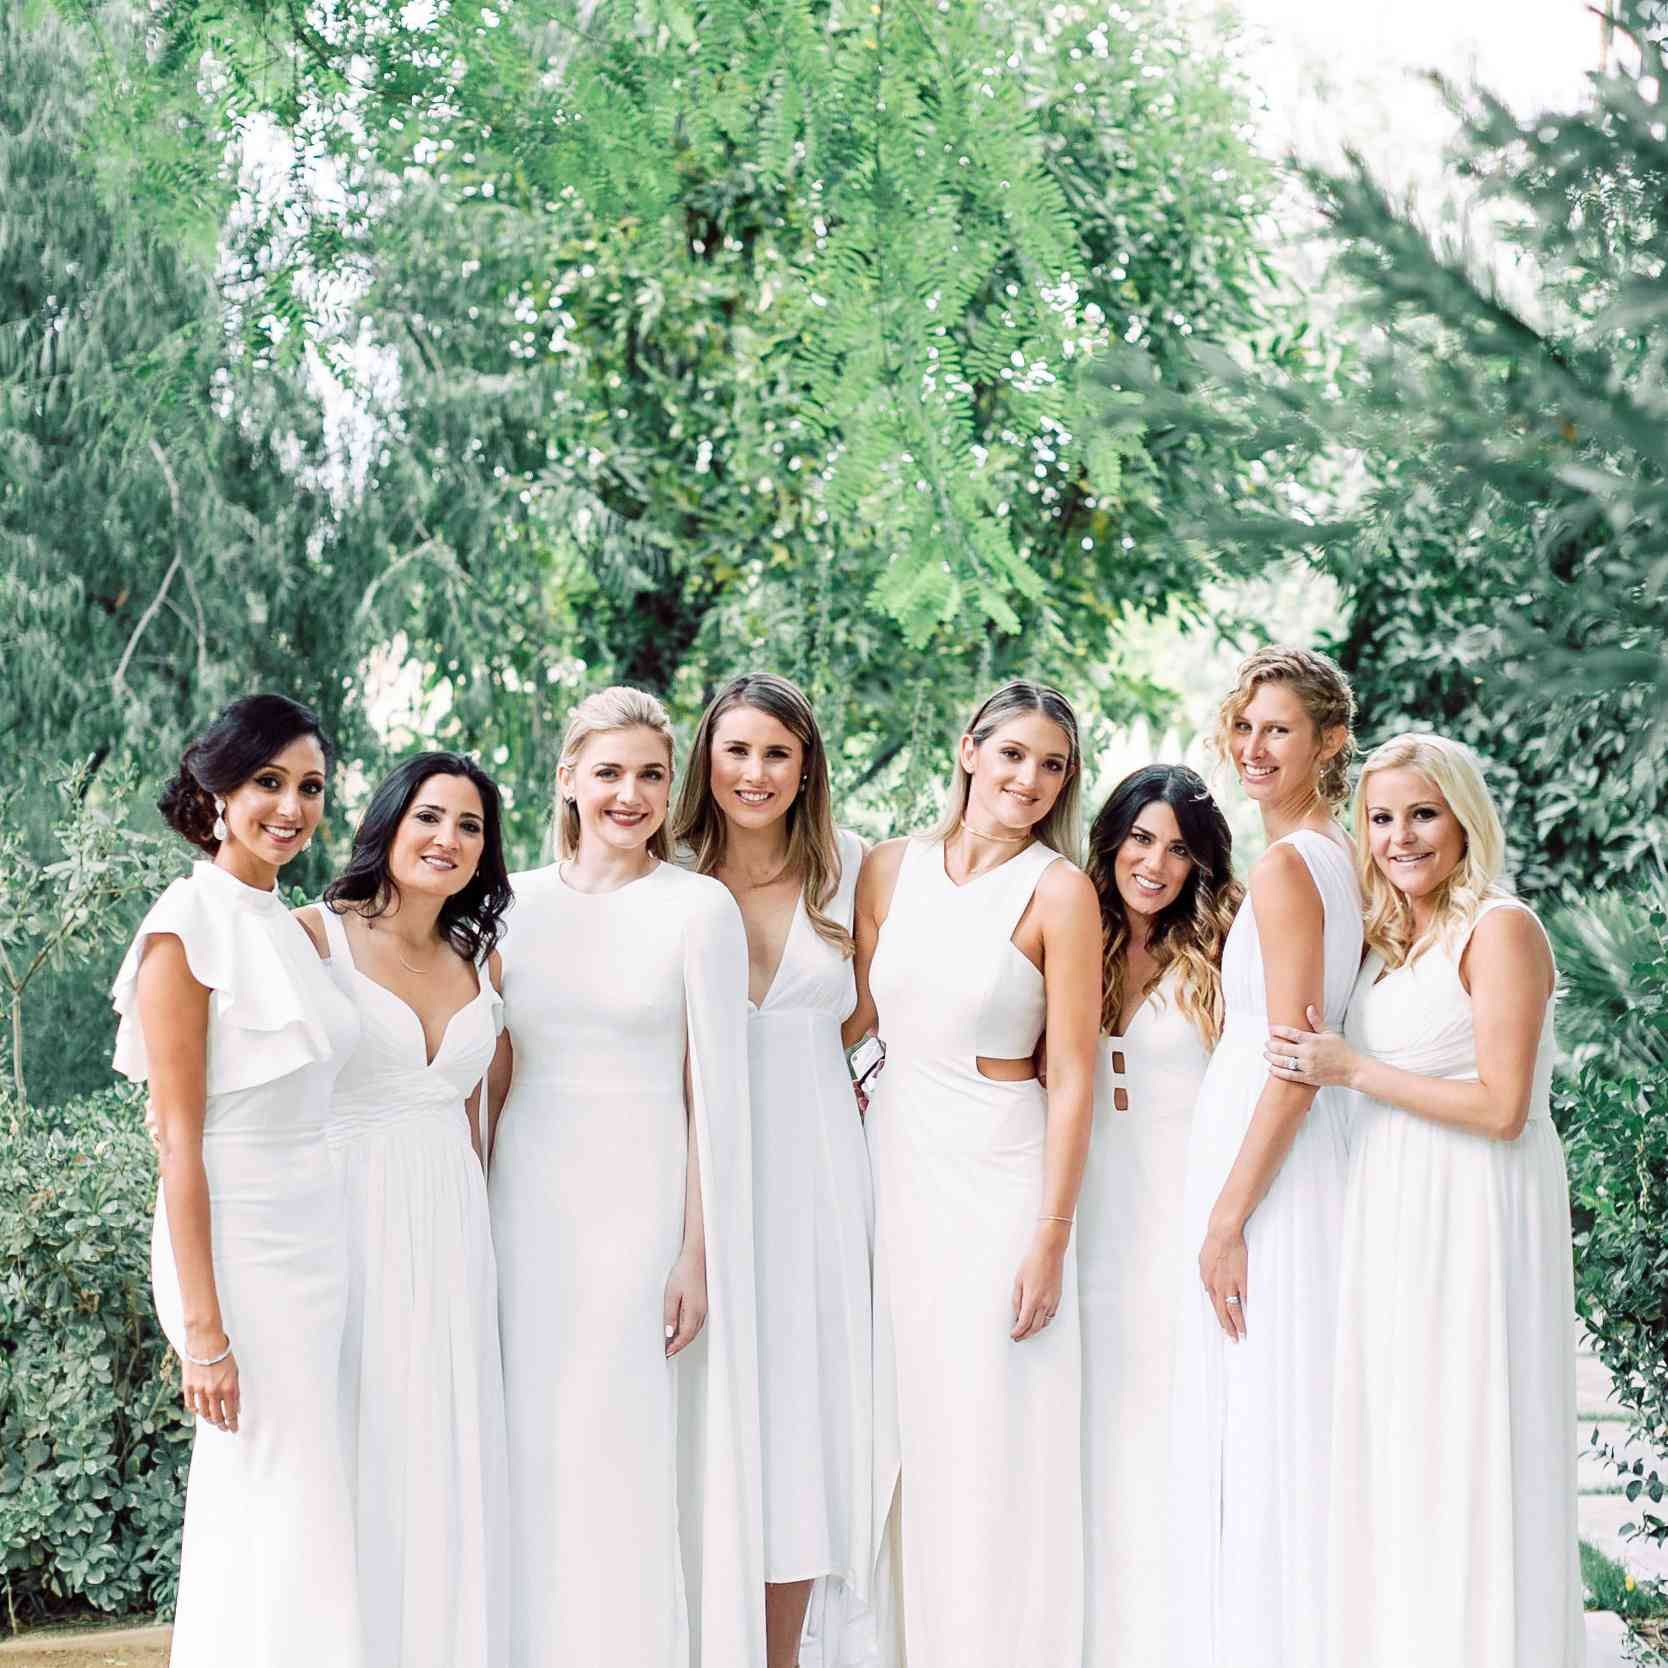 15 Bridal Shower Theme Ideas To Get You Inspired